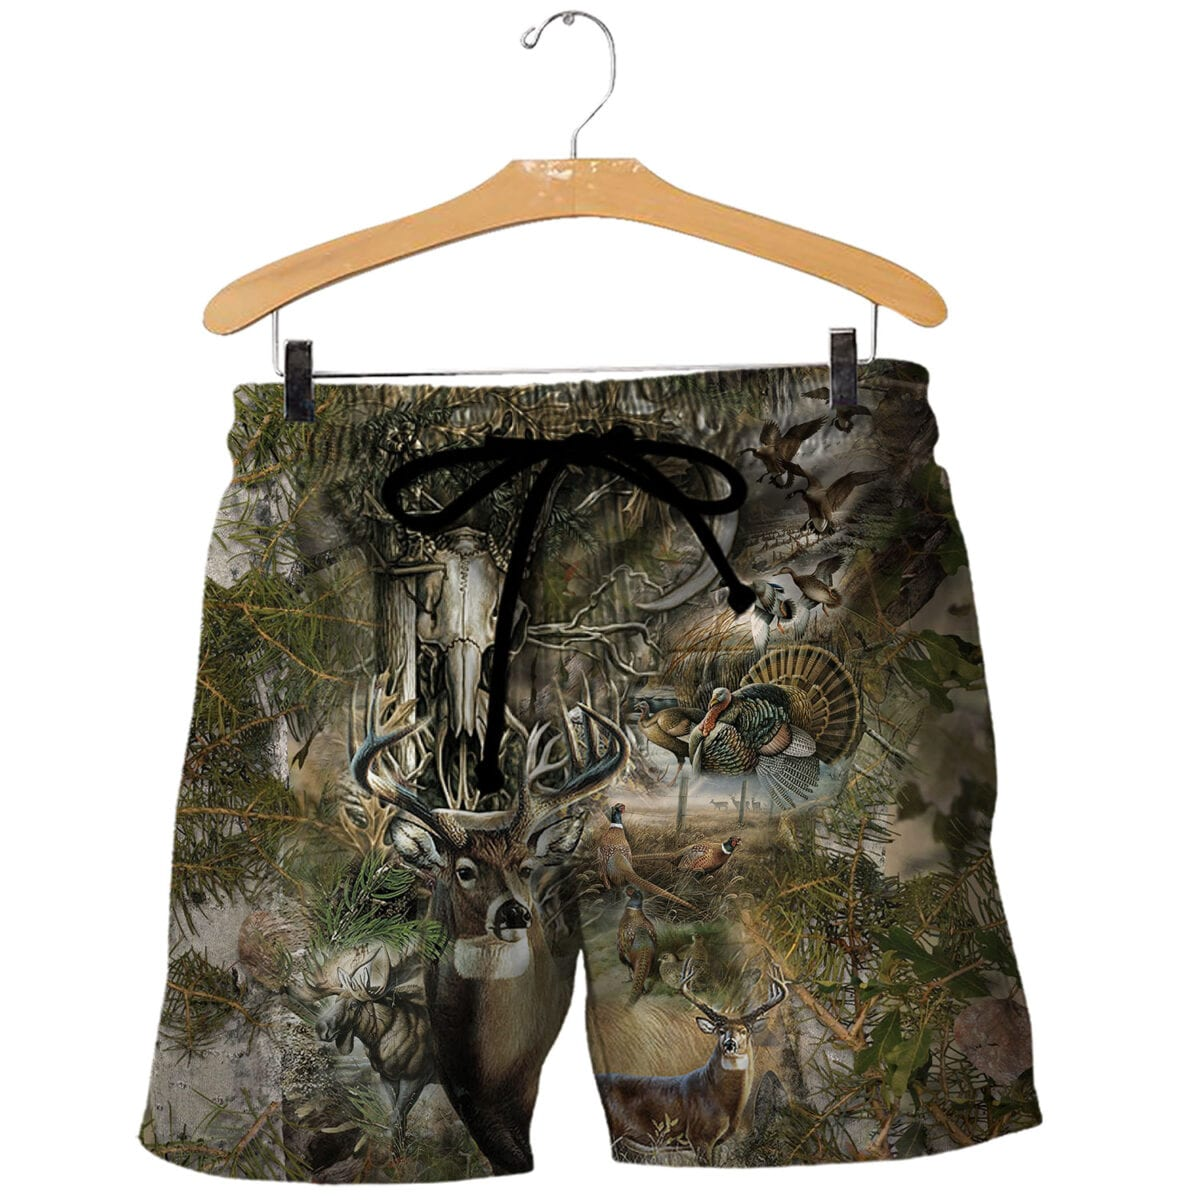 Beautiful Hunting Camo 3D All Over Printed Shirts for Men and Women 11